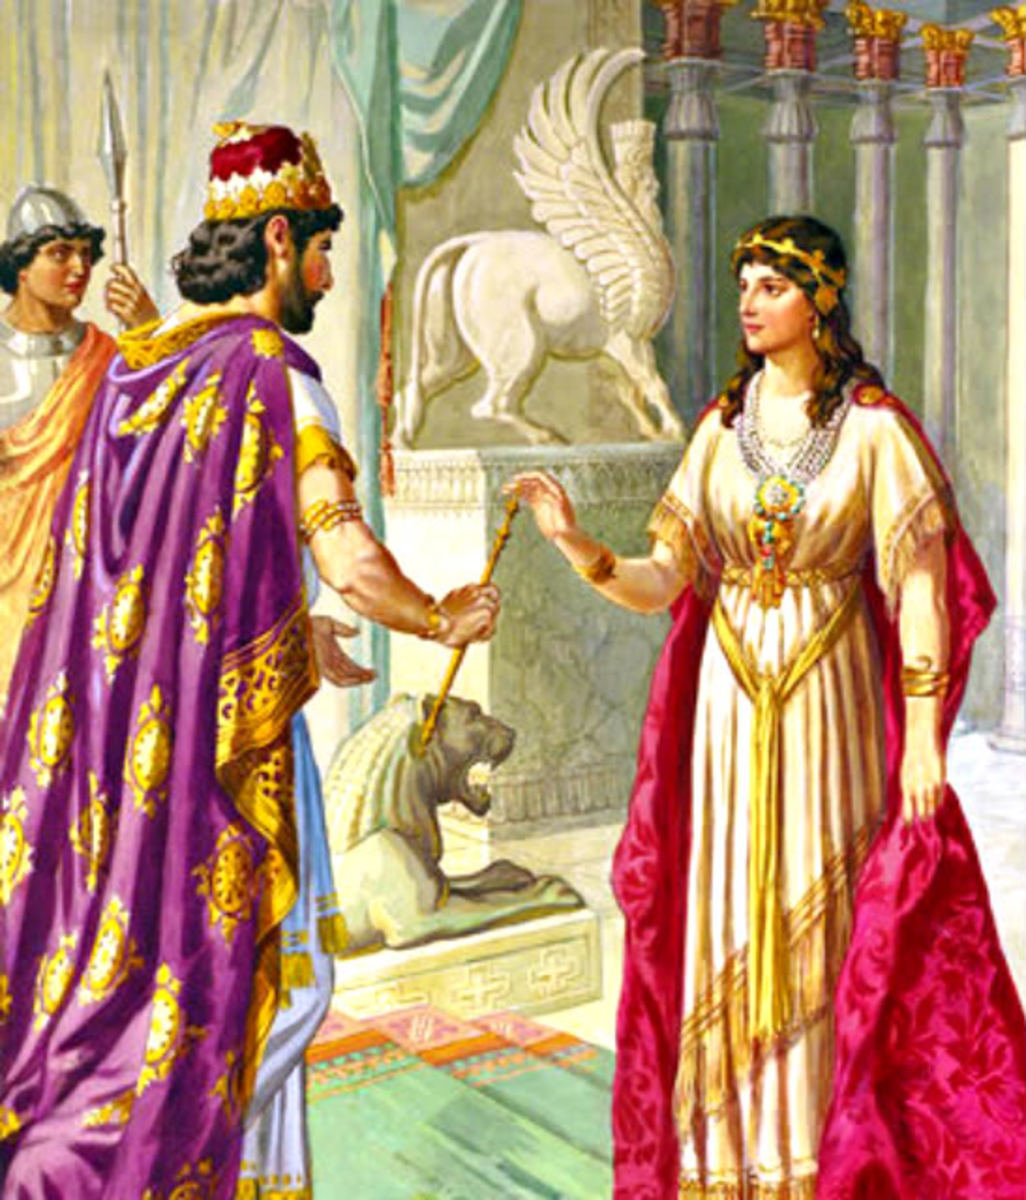 Esther Coming before the king uninvited deserved death, but  he held out the scepter in mercy.